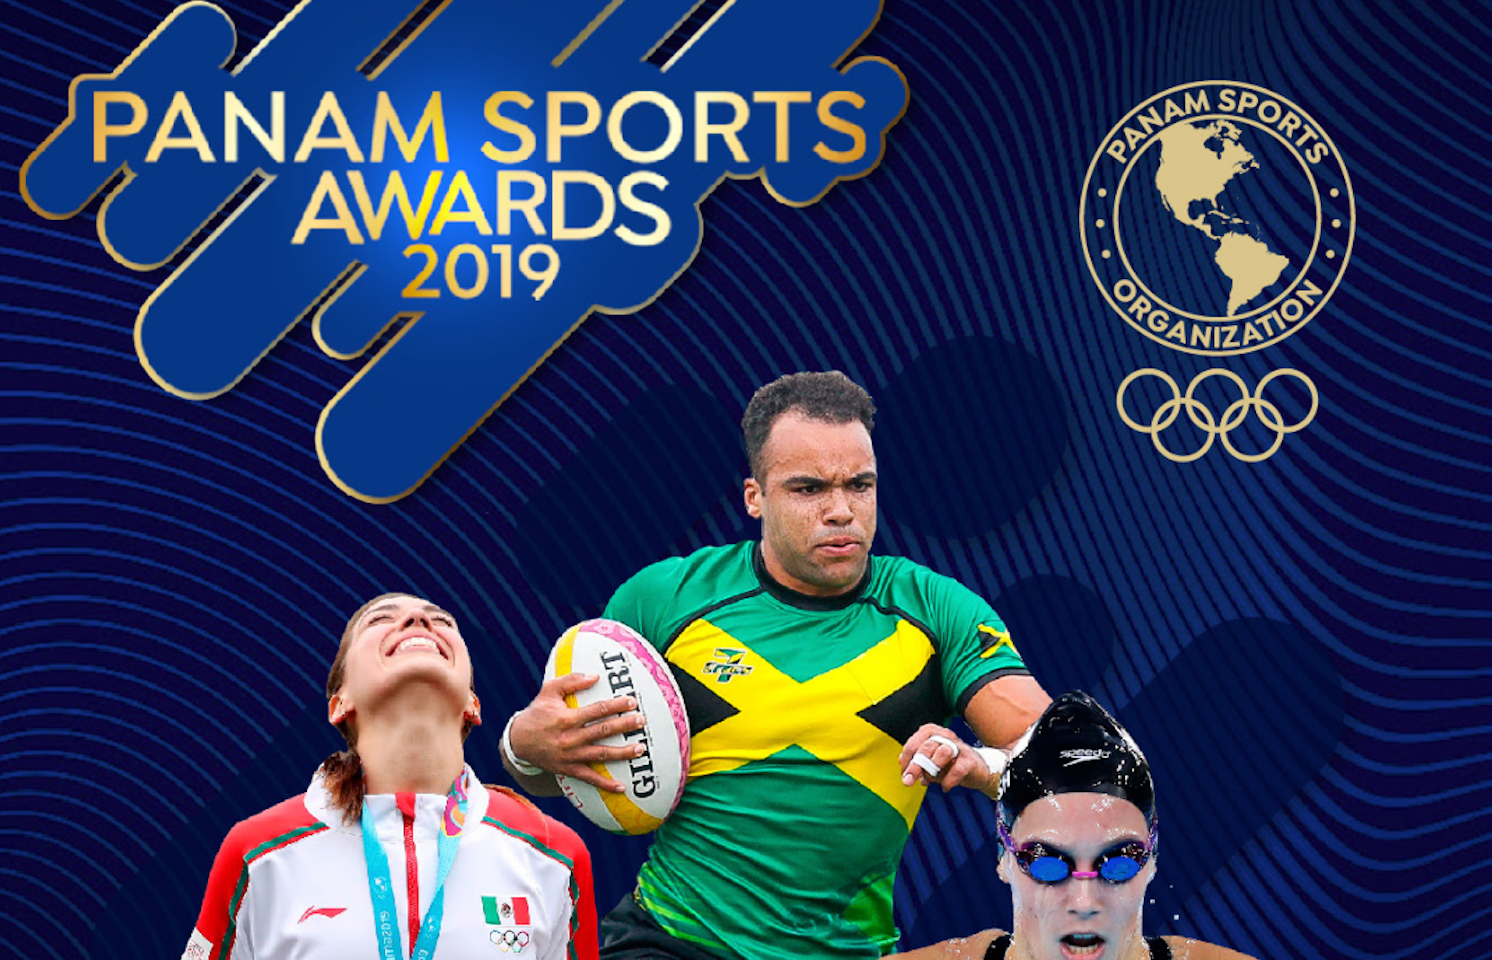 Best male and female athletes to be crowned at inaugural Panam Sports Awards